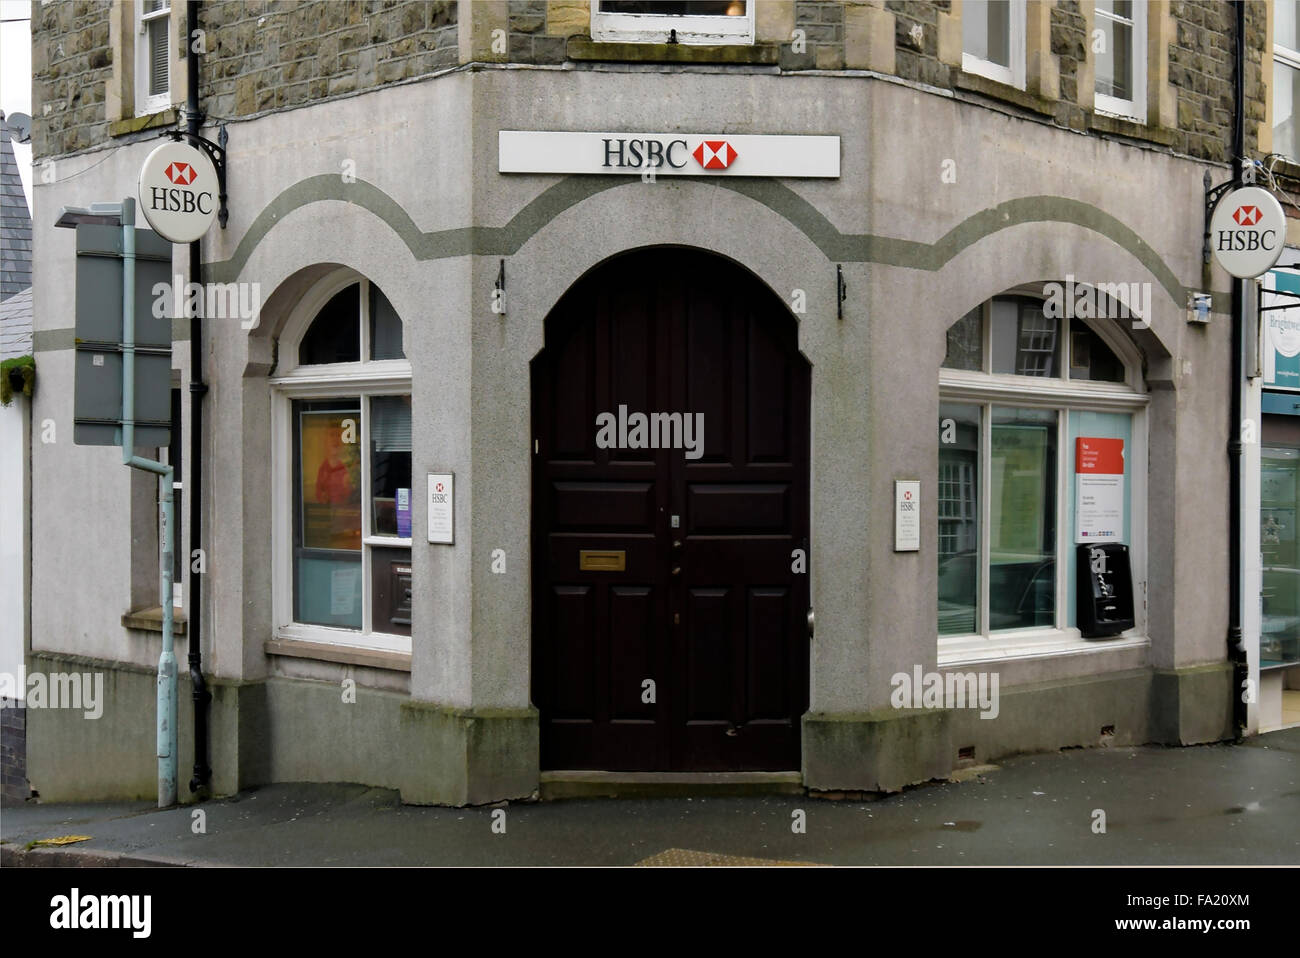 Exterior of HSBC Bank,Builth Wells,Powys,Wales,Closing March 2016 as announced in December 2015 aas part of cuts. - Stock Image